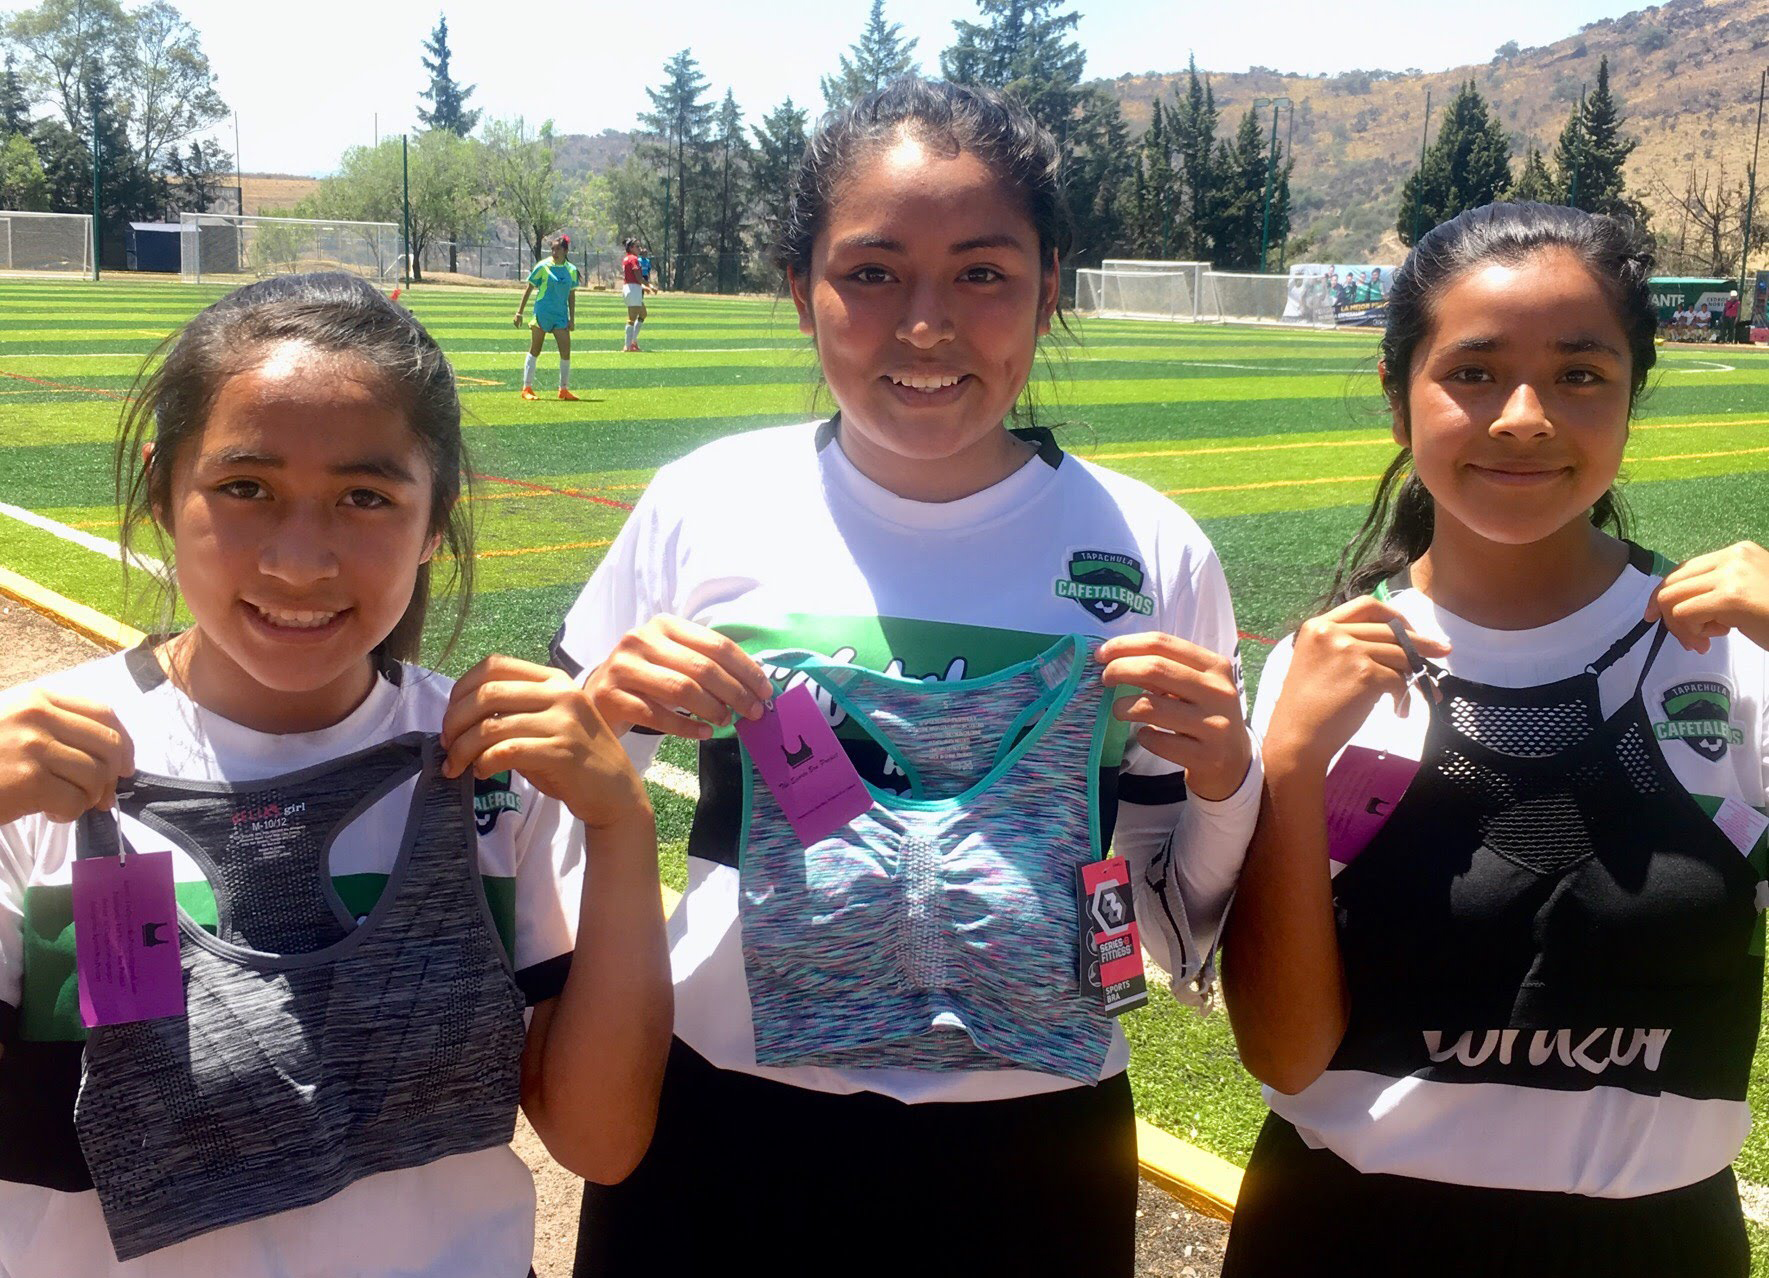 Players with Gonzo Soccer in Mexico received a shipment of sports bras in April 2018.